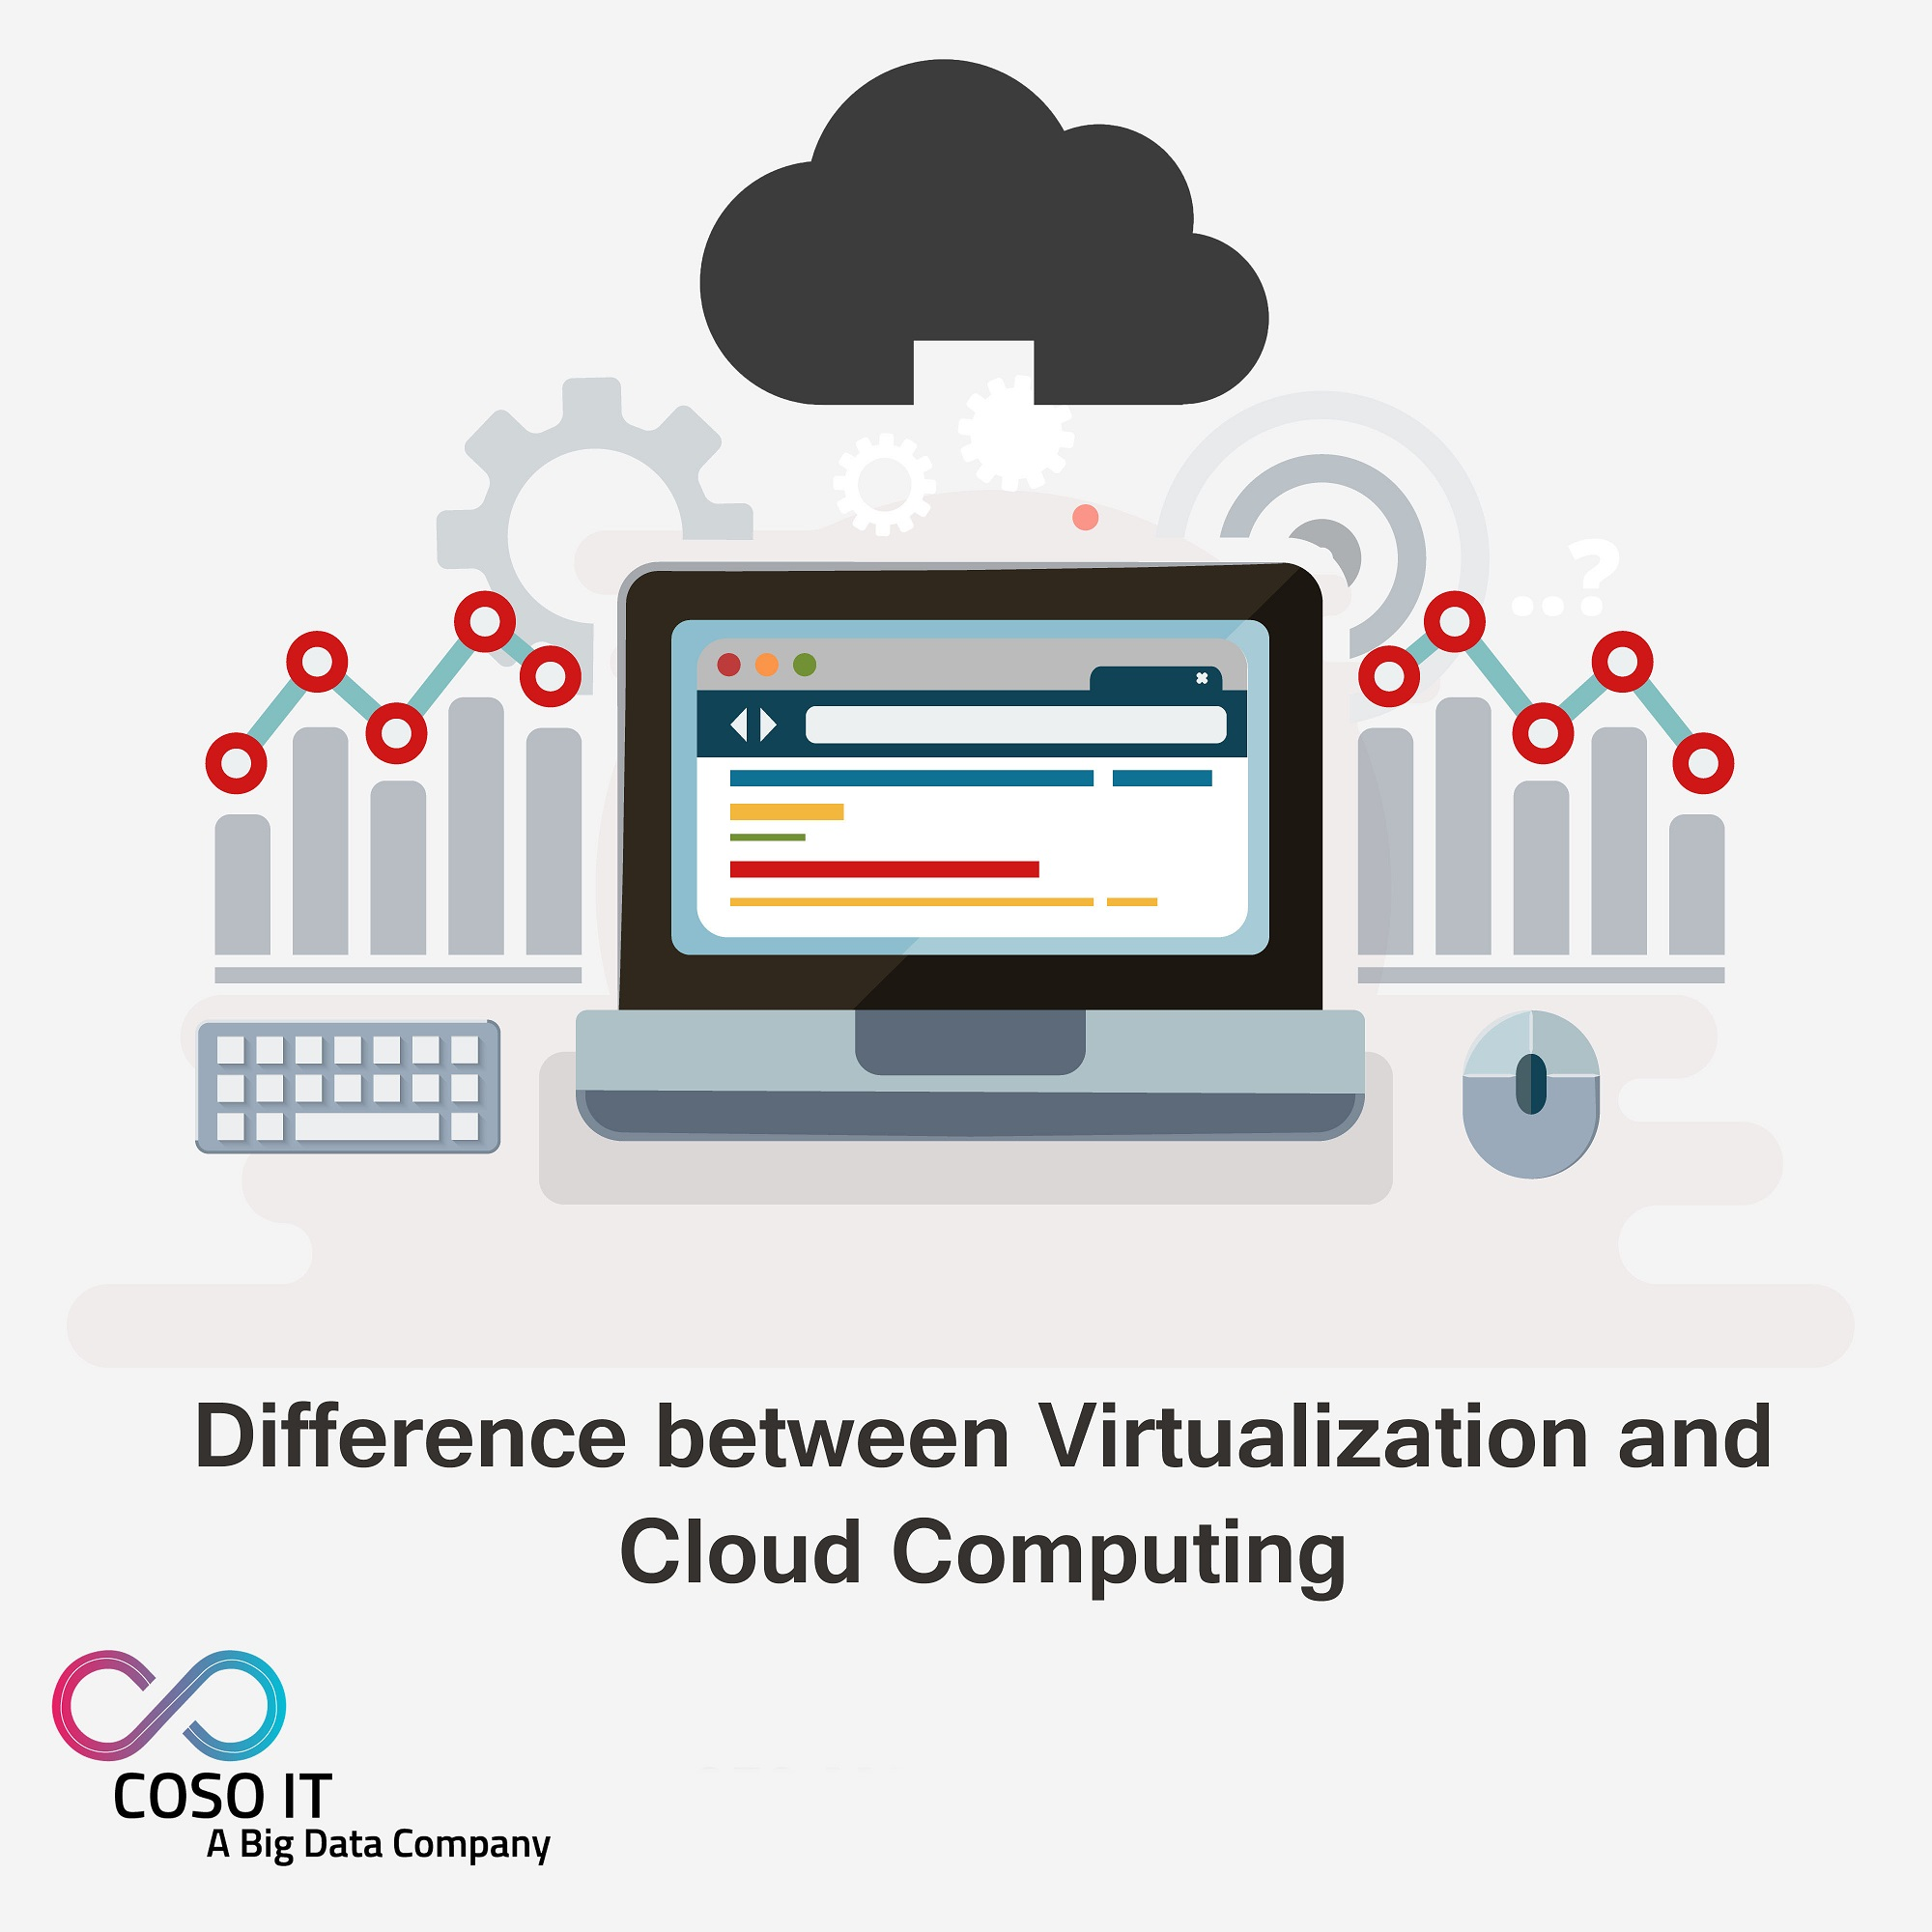 difference in Visualization and Cloud Computing